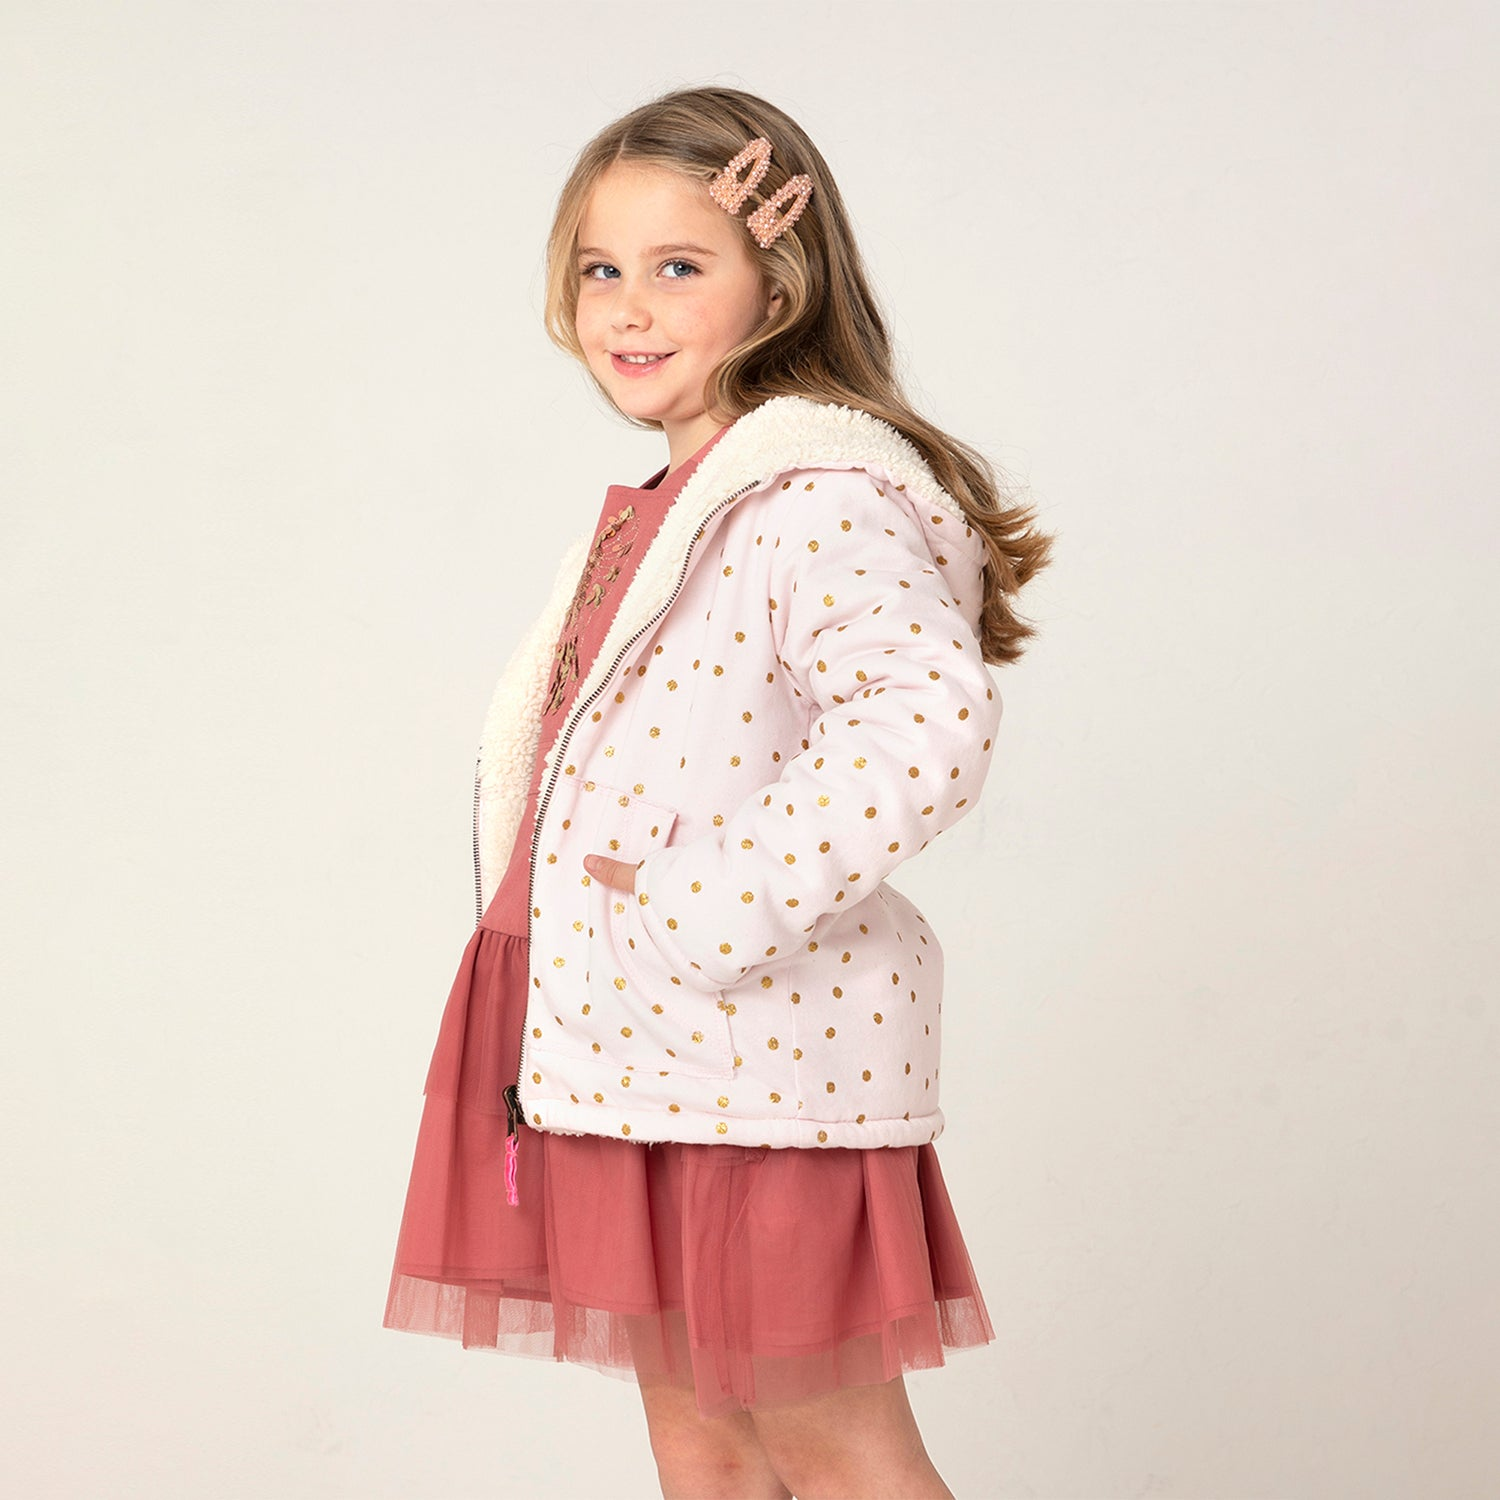 Polka Dot Reversible Hooded Sweatshirt for kids